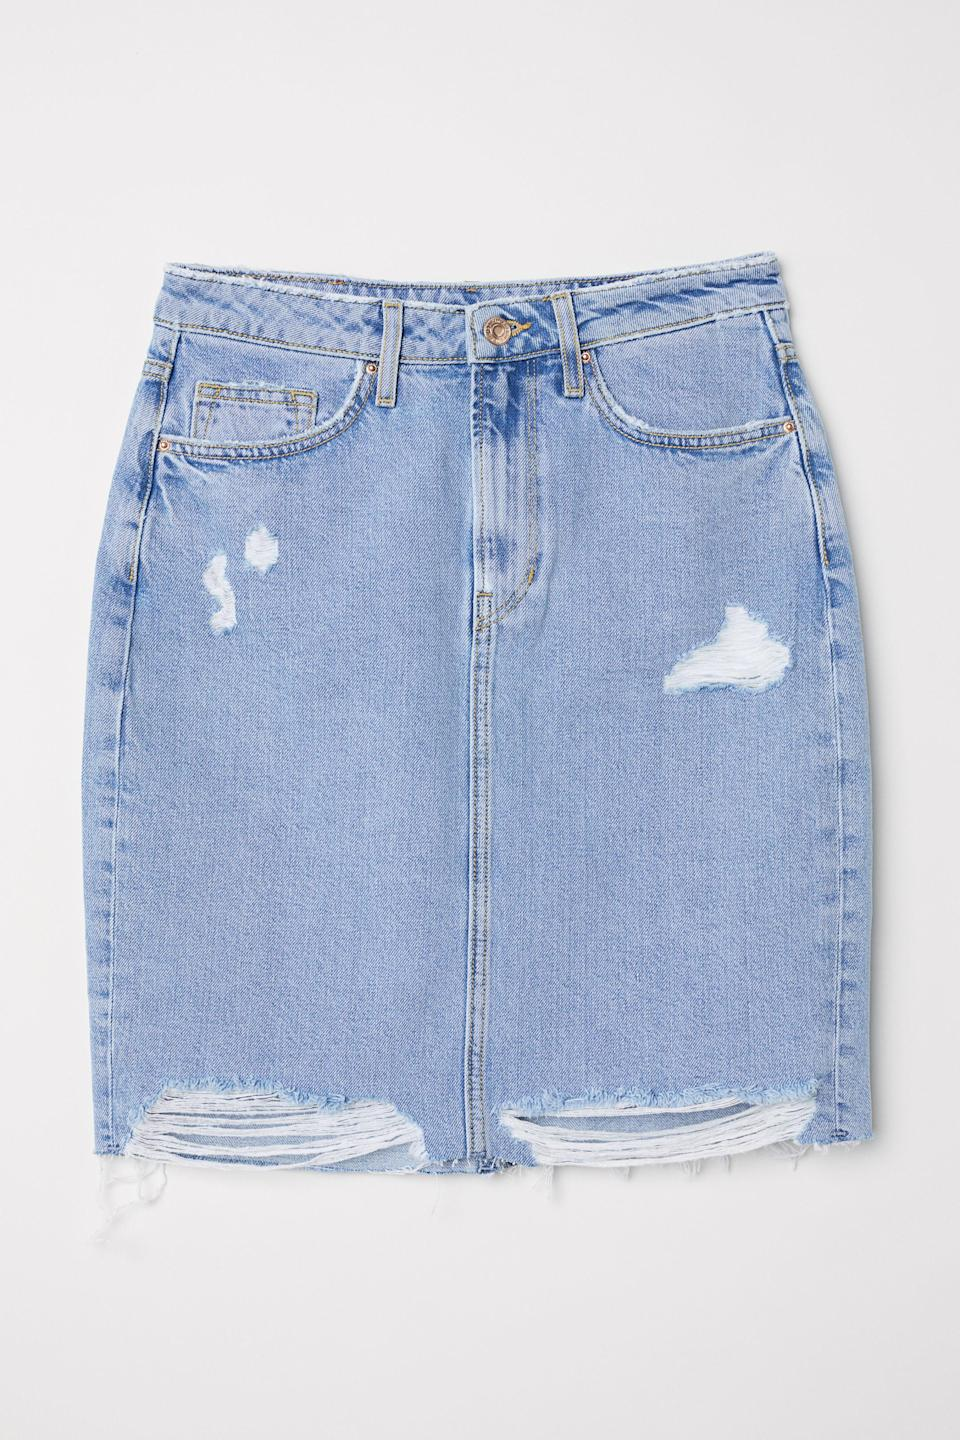 """<p>Everyone needs a denim skirt for spring, and while we might need to wait under it heats up a bit before going bare-legged, this H&M number is going swiftly in the shopping basket. <em><a rel=""""nofollow noopener"""" href=""""http://www2.hm.com/en_gb/productpage.0554640003.html"""" target=""""_blank"""" data-ylk=""""slk:Buy here."""" class=""""link rapid-noclick-resp"""">Buy here.</a></em><br><br></p>"""